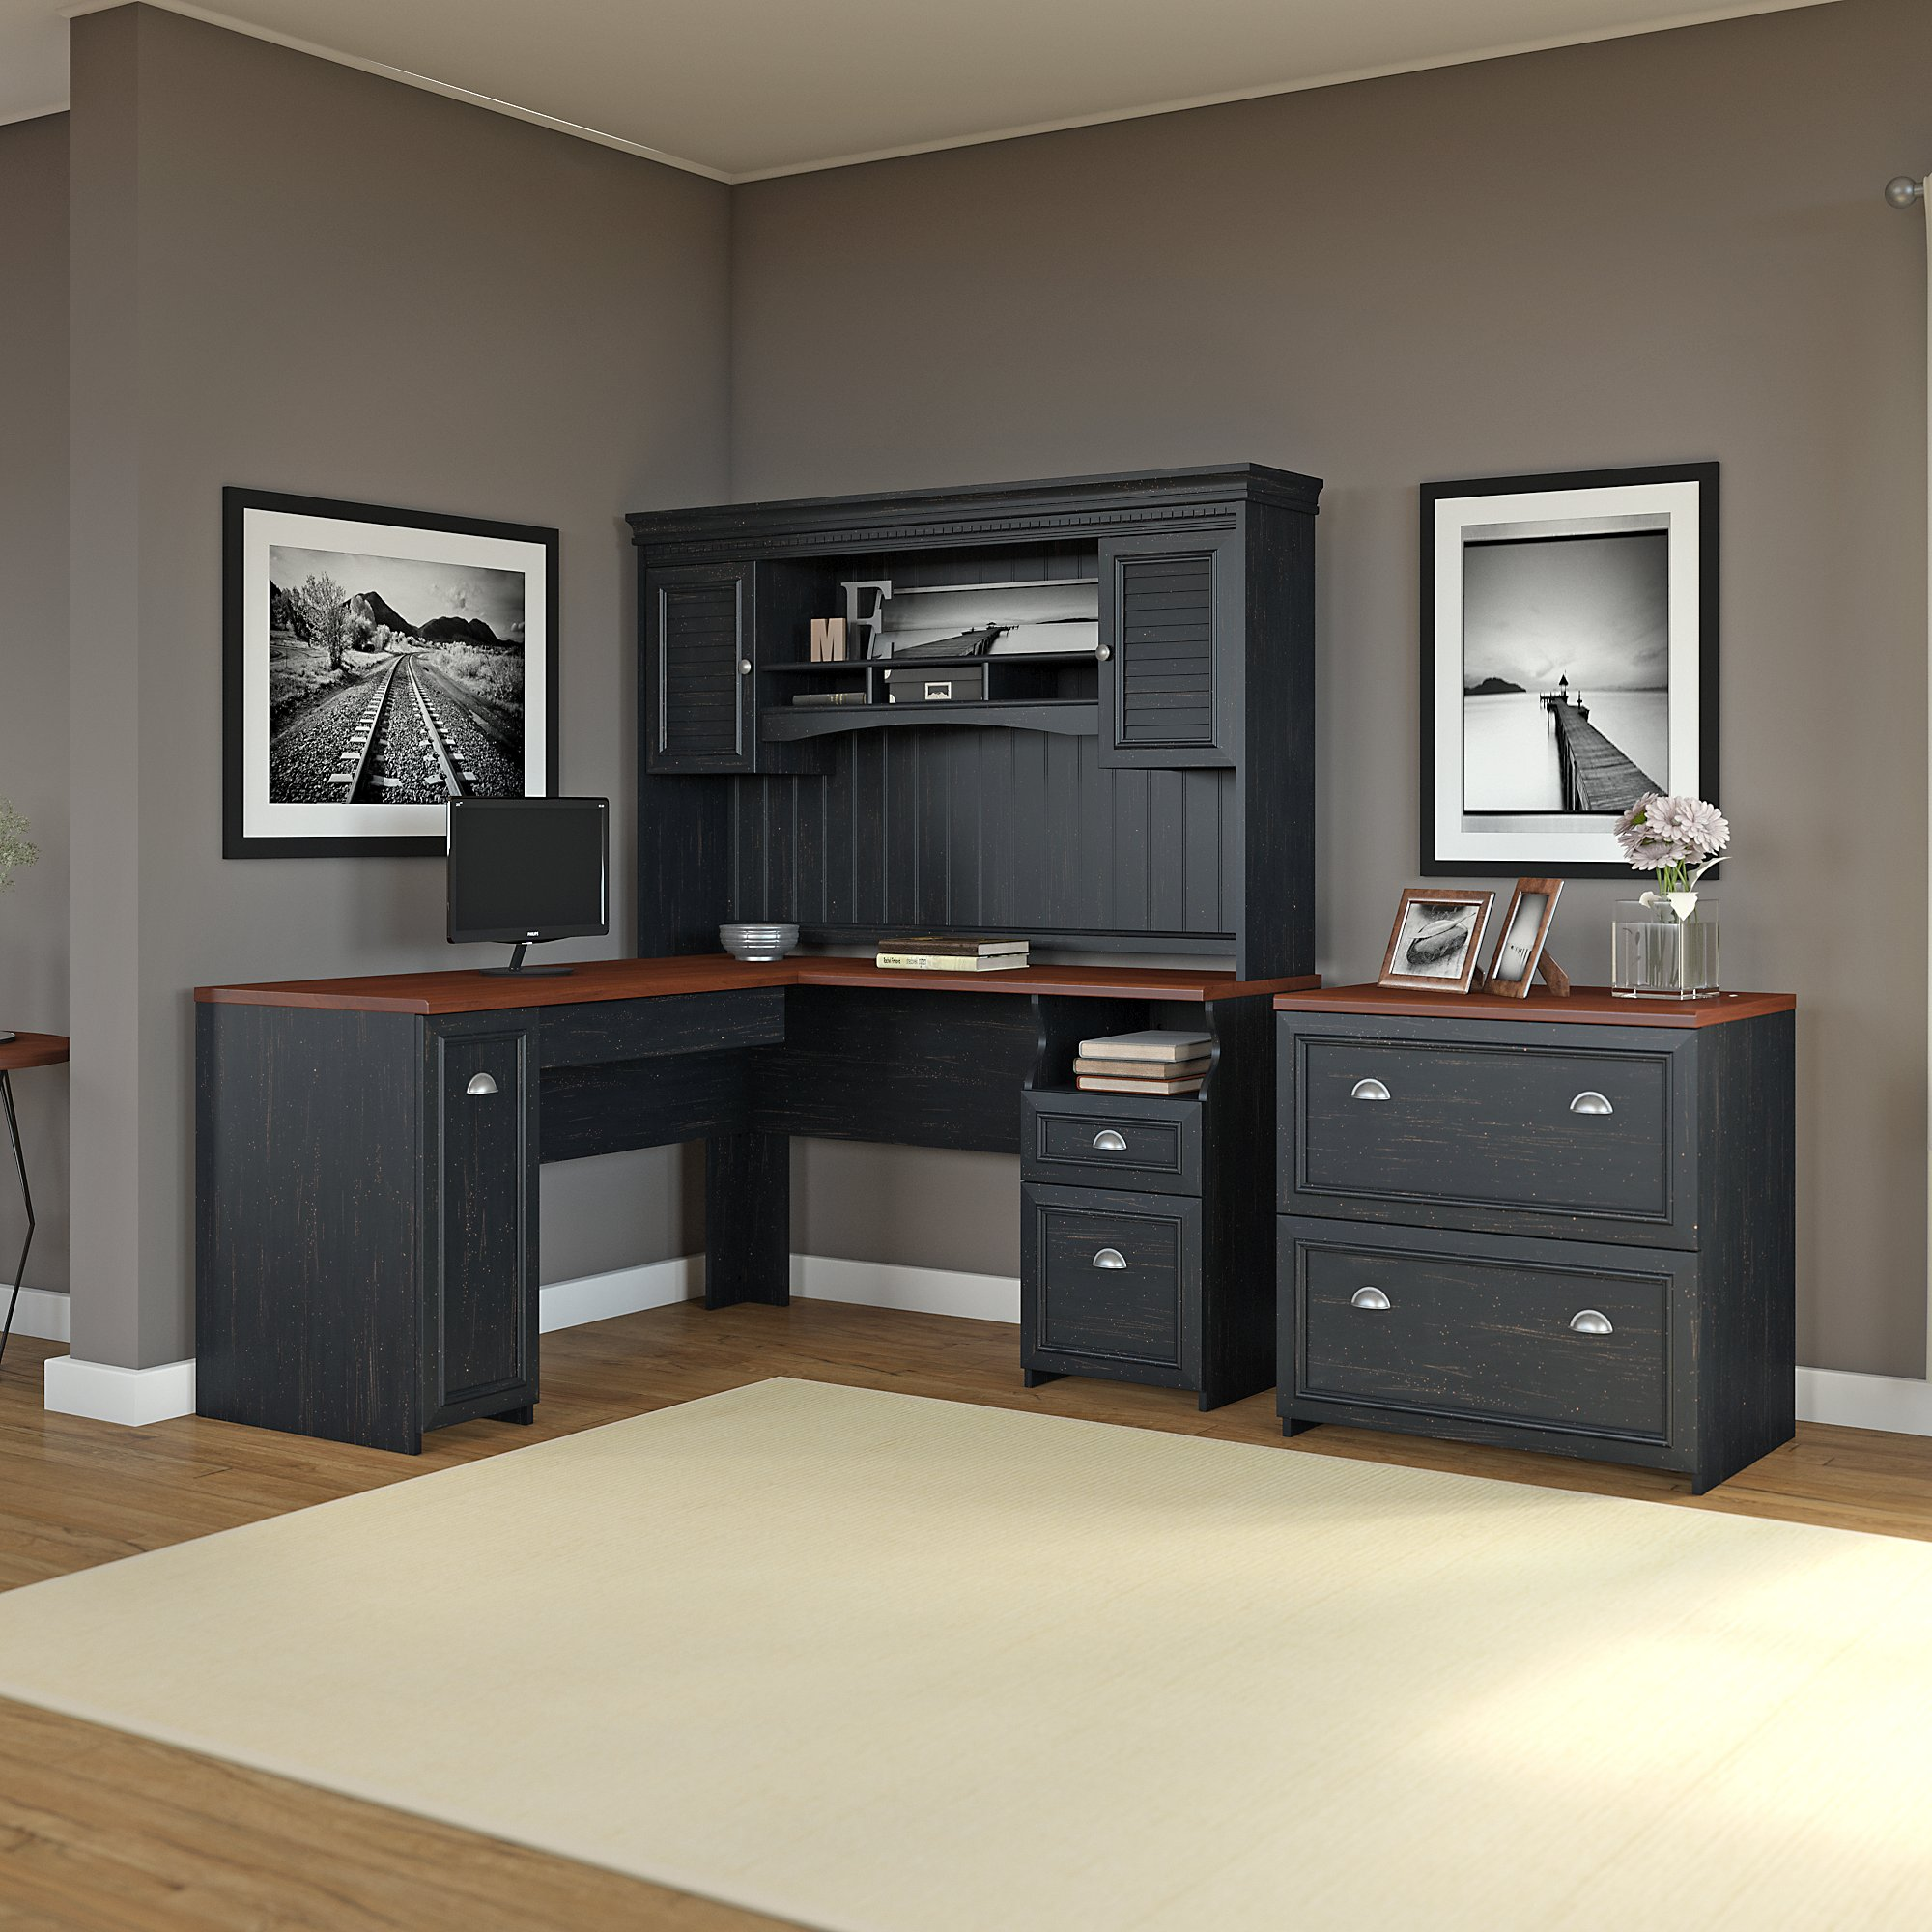 Fairview L Shaped Desk with Hutch and Lateral File Cabinet in Black